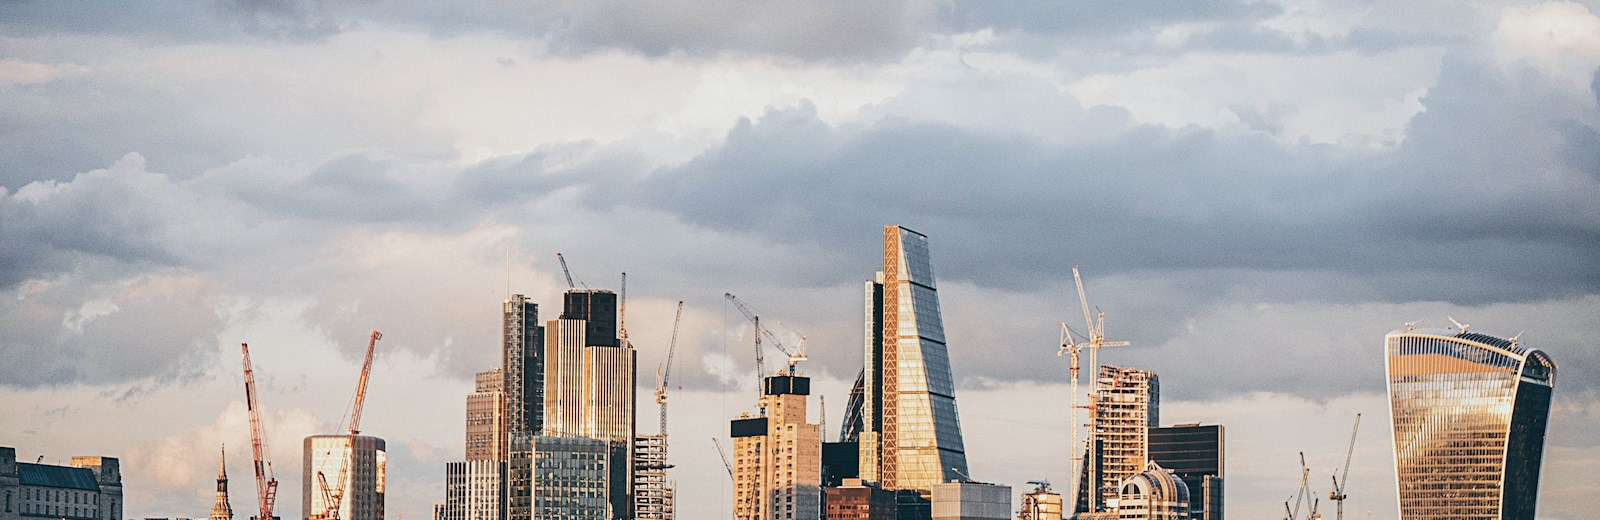 A view of the city of London, showing construction work and cranes in the background